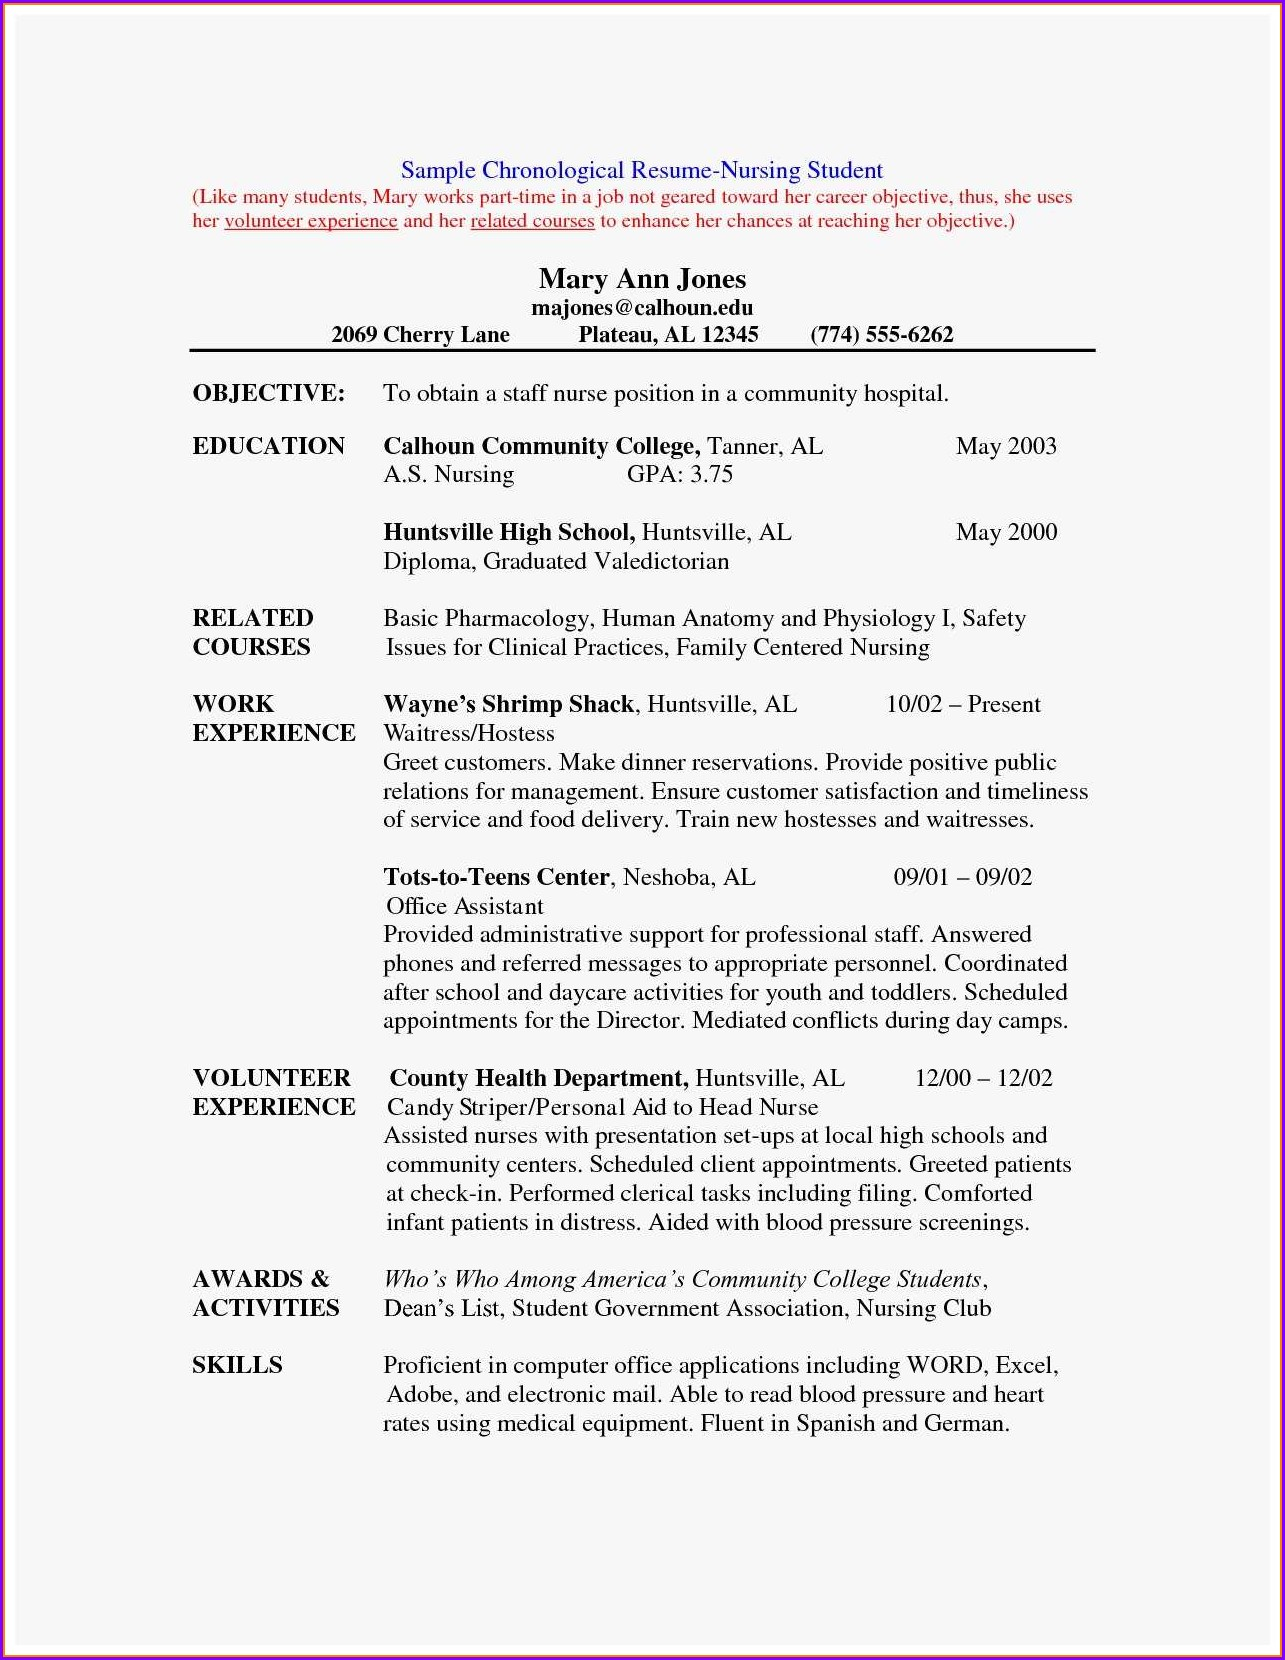 Resume Format For Nursing Job Pdf